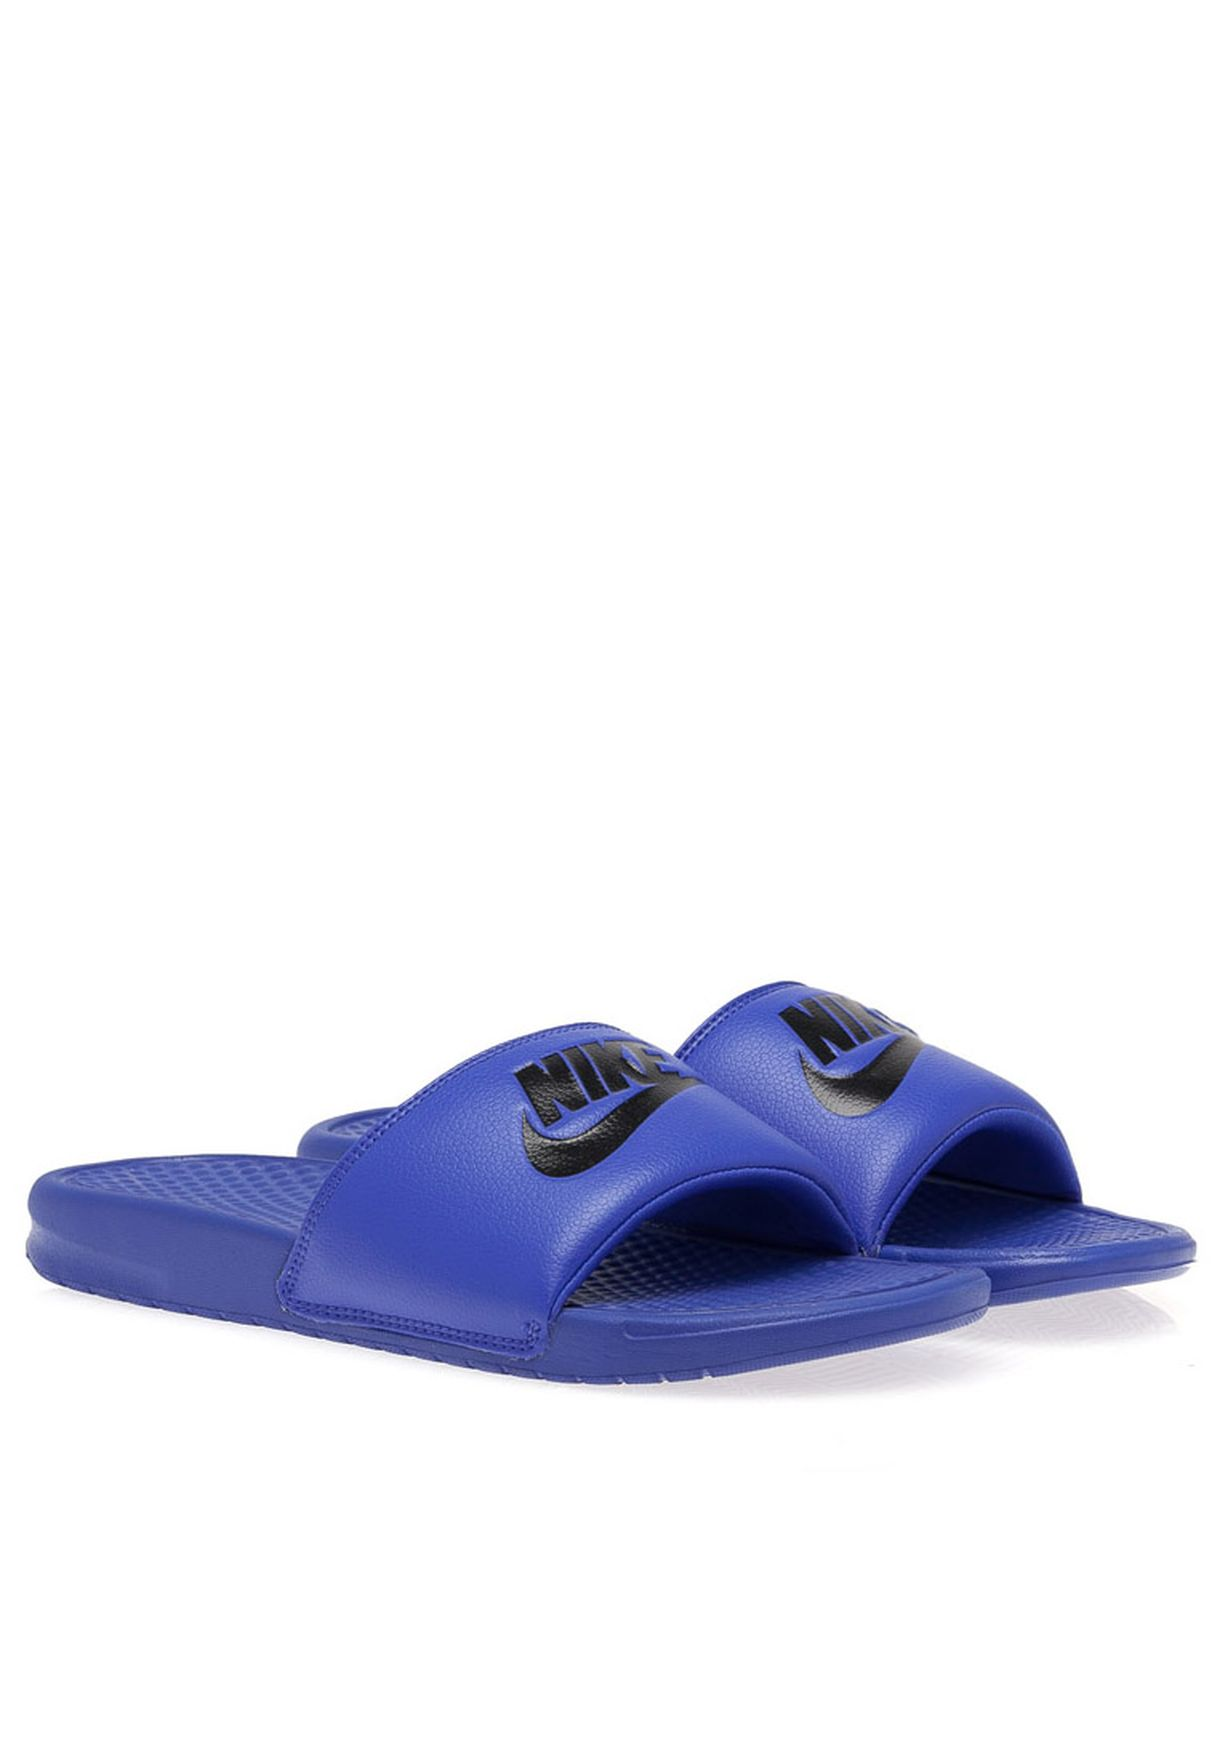 d0a23012fe11b5 Shop Nike blue Benassi jdi Casual Sandals 343880-404 for Men in Kuwait -  NI727SH95ZRK